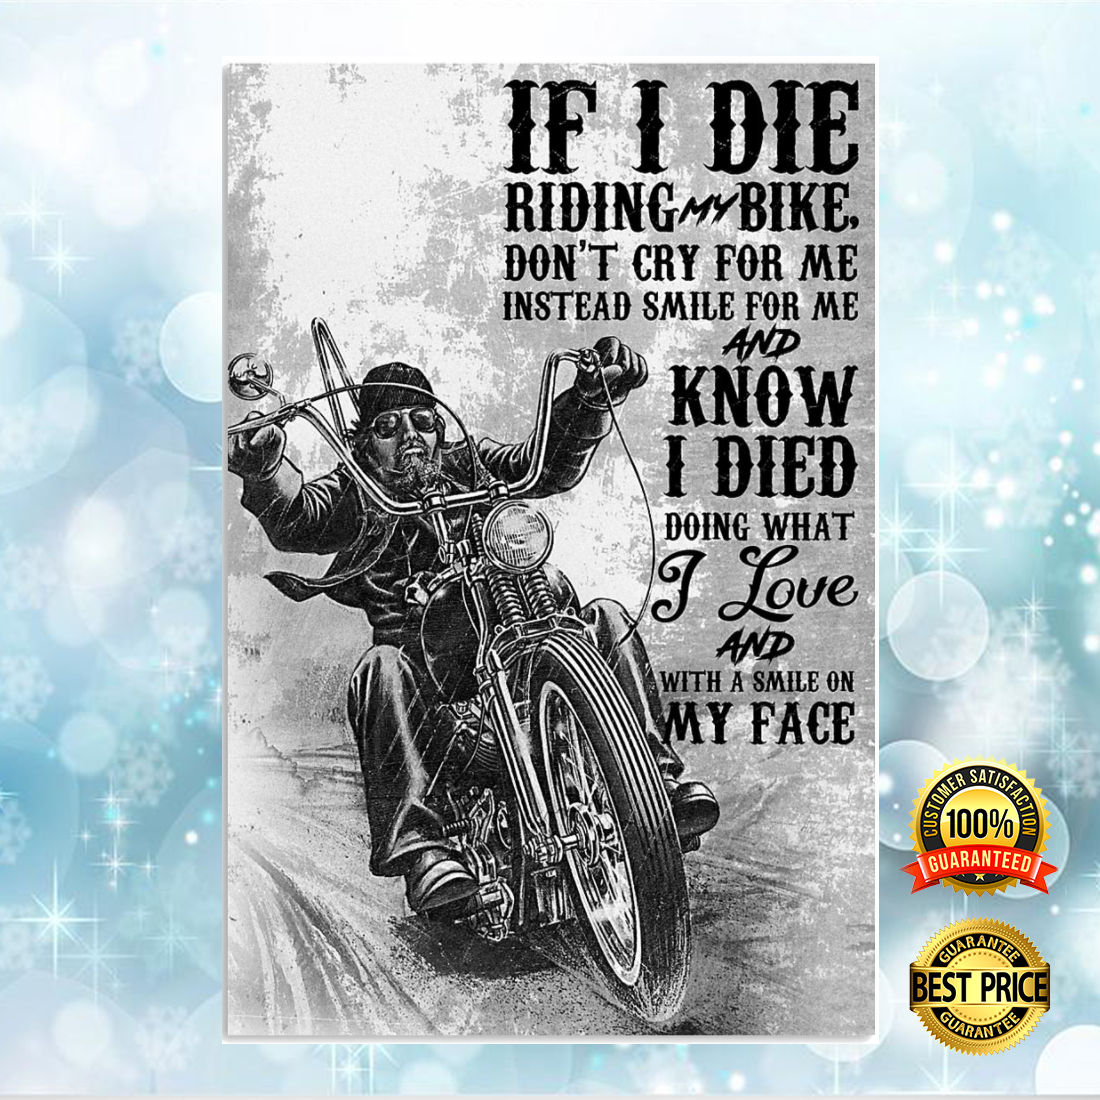 IF I DIE RIDING BIKE DON'T CRY FOR ME INSTEAD SMILE FOR ME POSTER 5